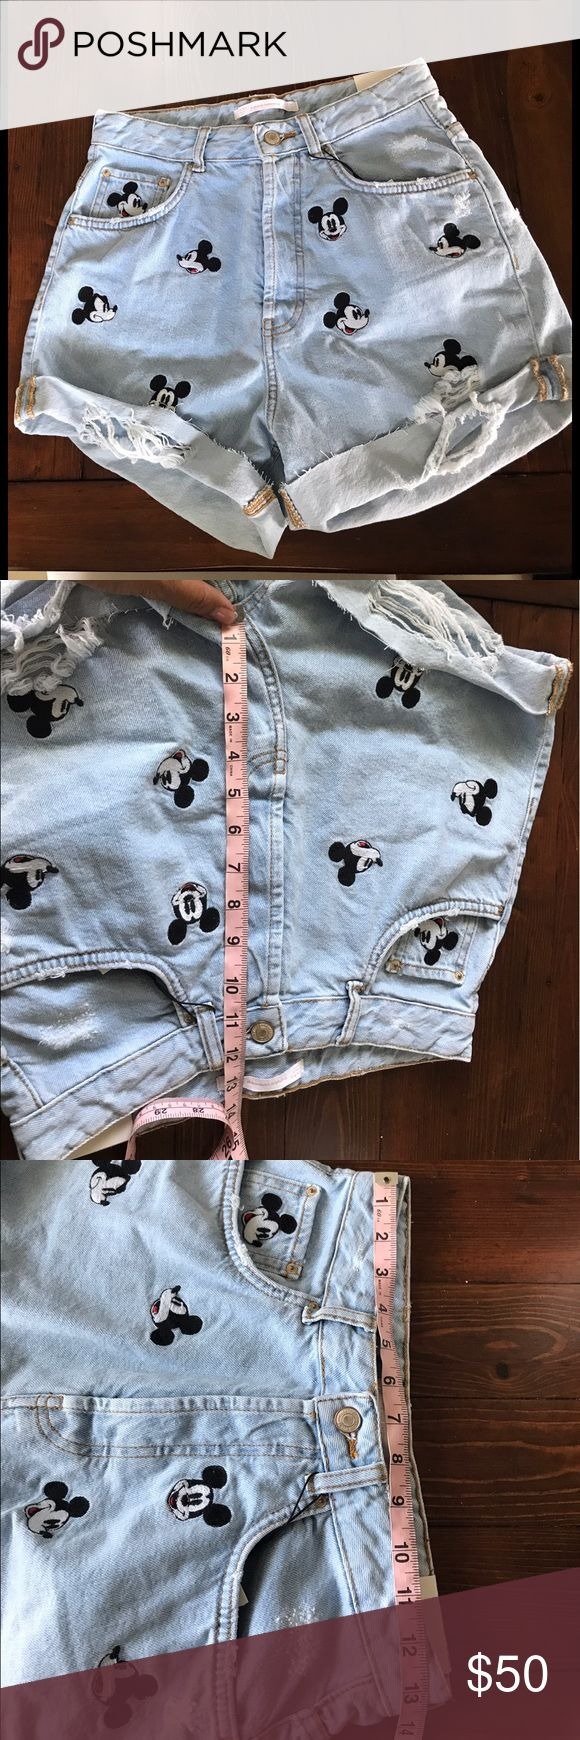 Mickey Disney Zara high waisted shorts size 4 Only tried on. I'm very sad I really want these to work. Seen all over Pinterest. Mom fit. My body doesn't suit it. Priced to get money back. Ask questions. Last picture is stock photo. Zara Shorts Jean Shorts